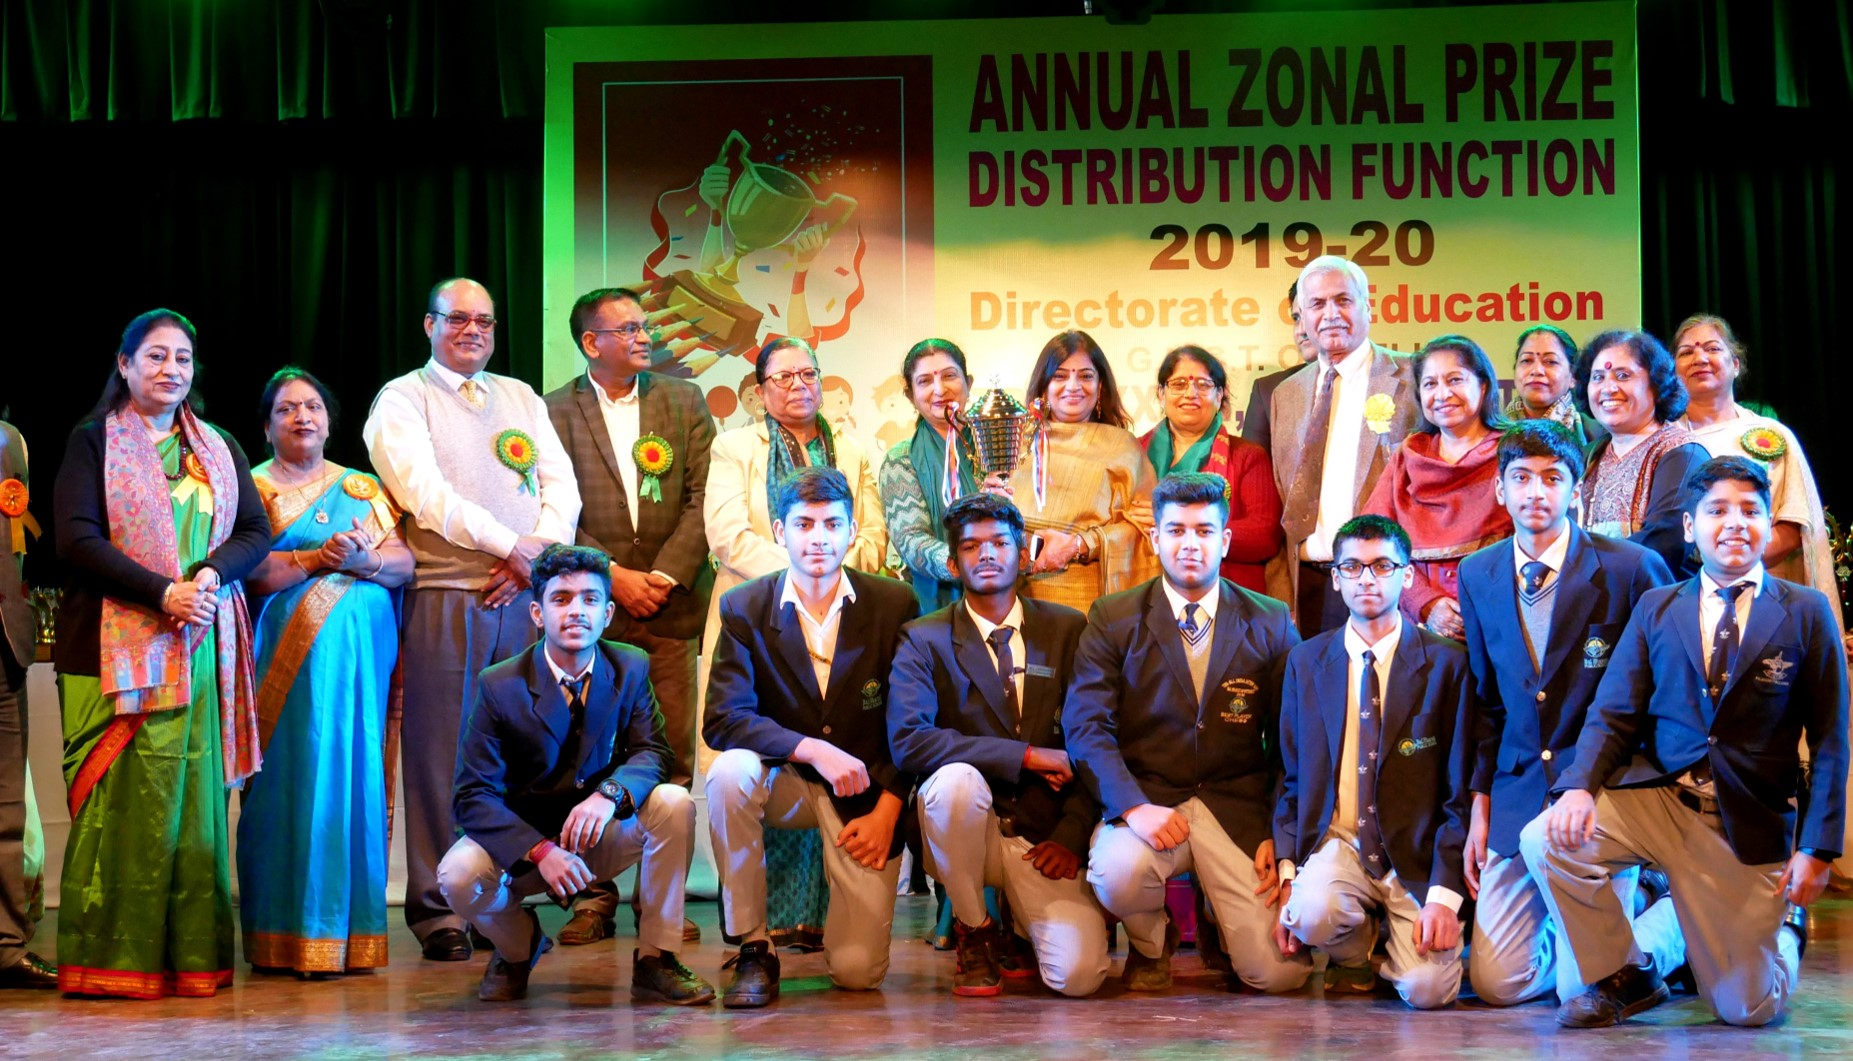 Annual Zonal Prize Distribution